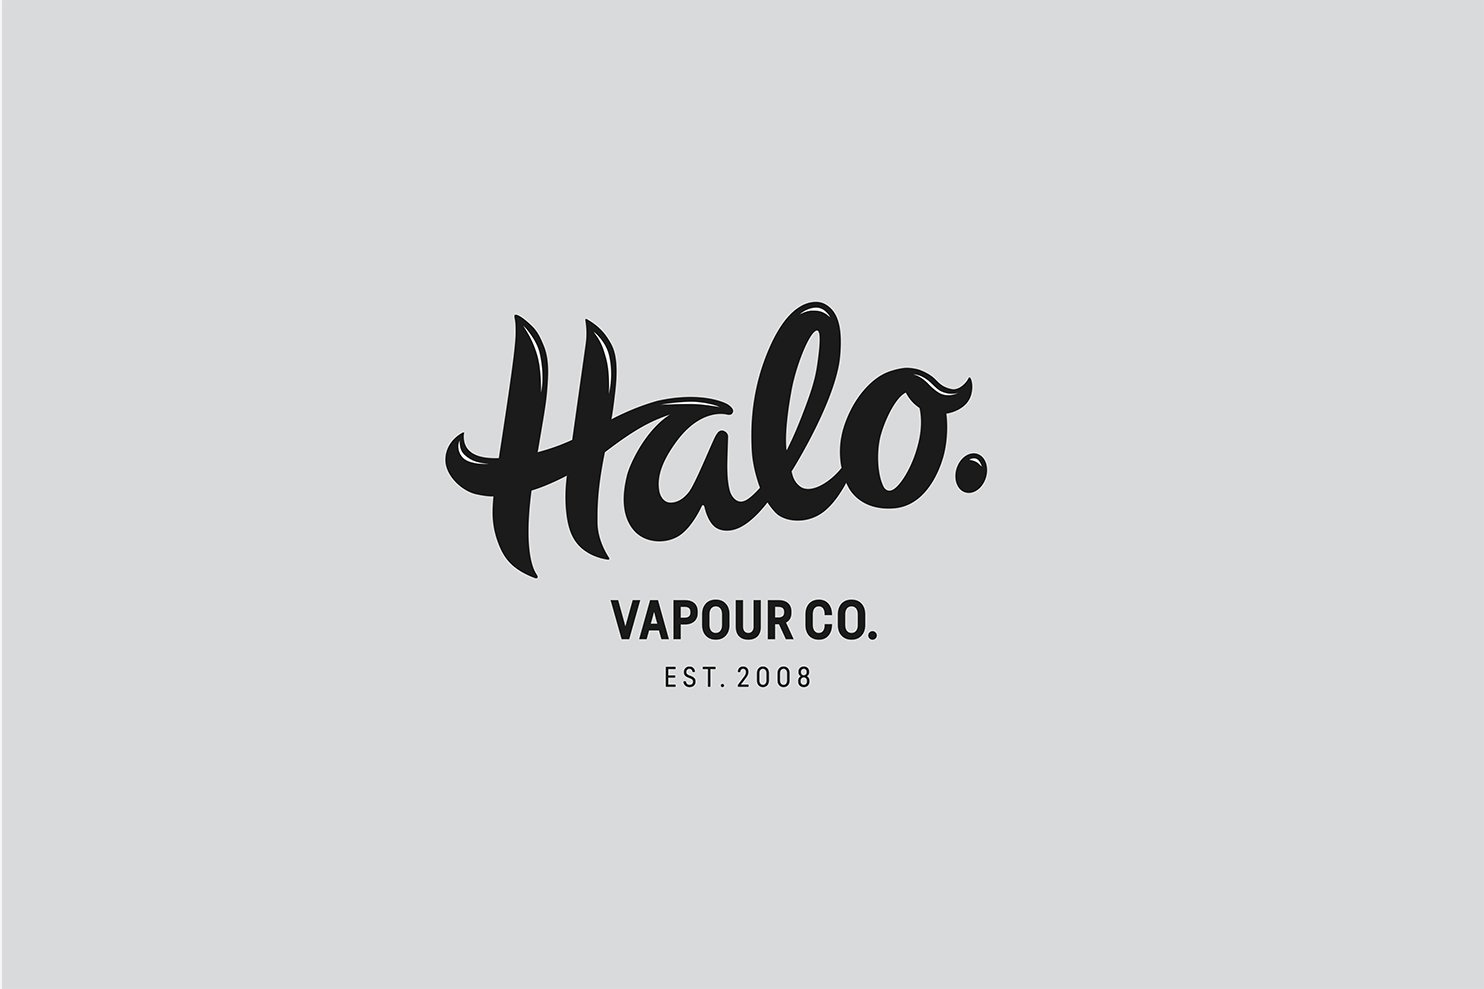 Increasing Halo sales by 40%